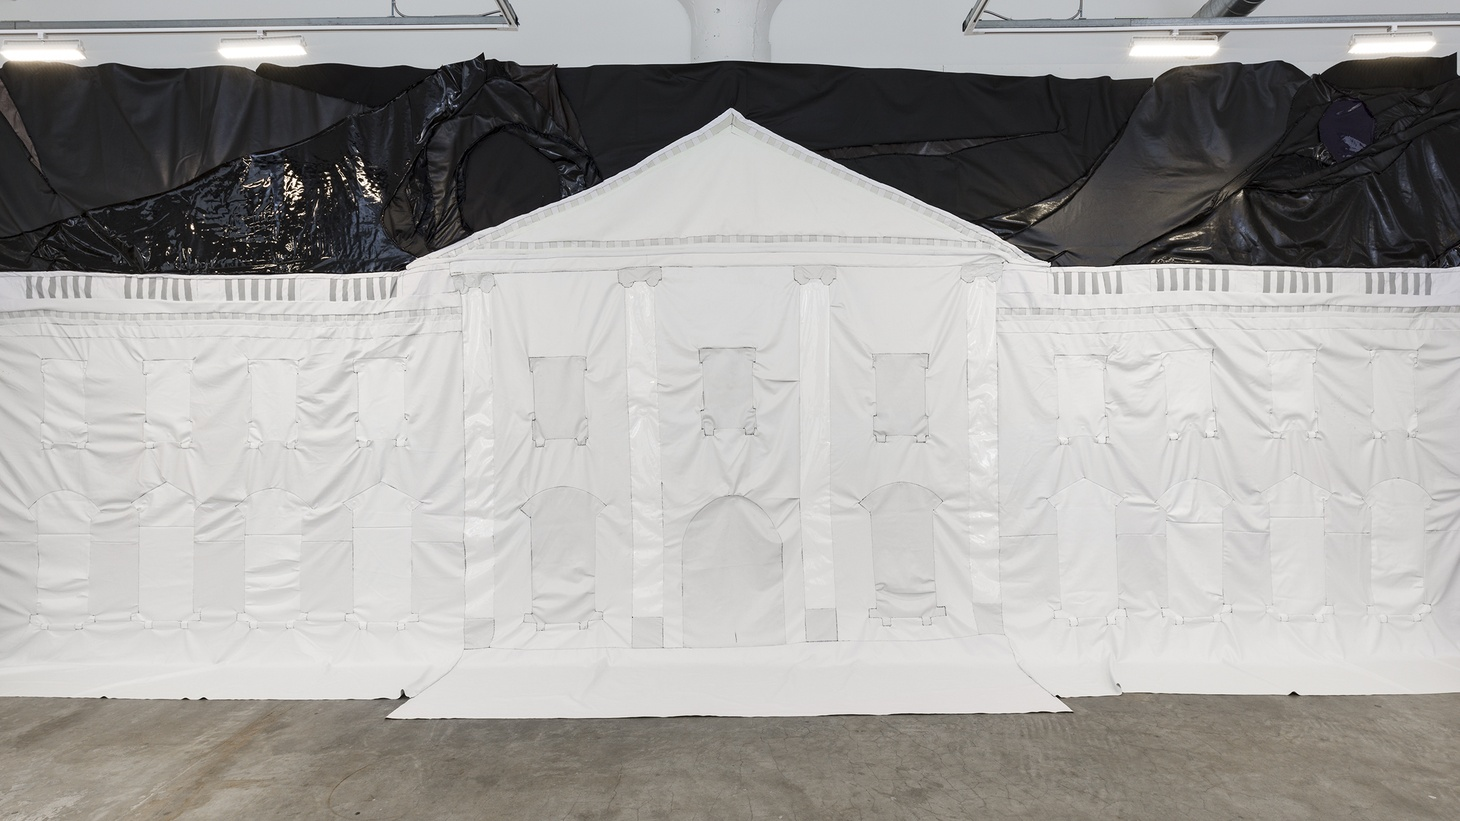 "Rodney McMillian's ""White House II"" is made out of fabric, so it needs the wall to support it, therefore undermining the symbolic strength of The White House with softness."